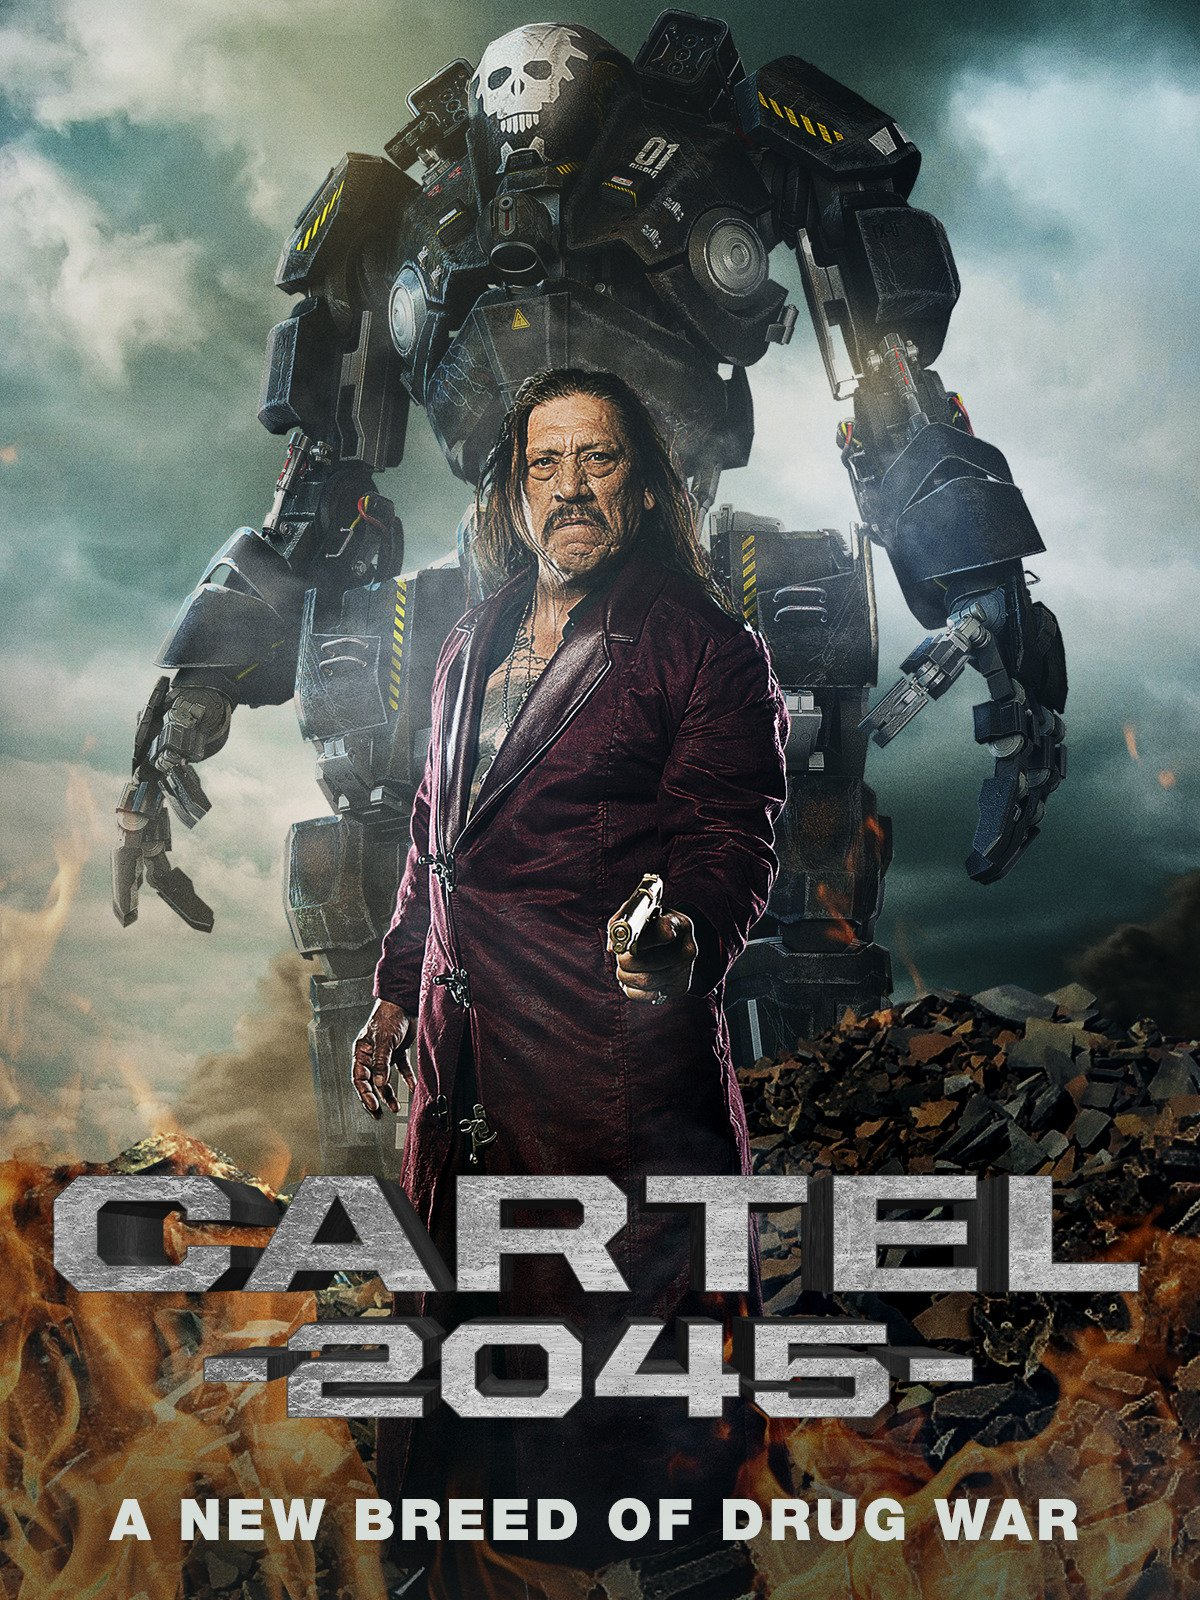 Amazon.com: Cartel 2045: Danny Trejo, Brad Schmidt, Alex ...